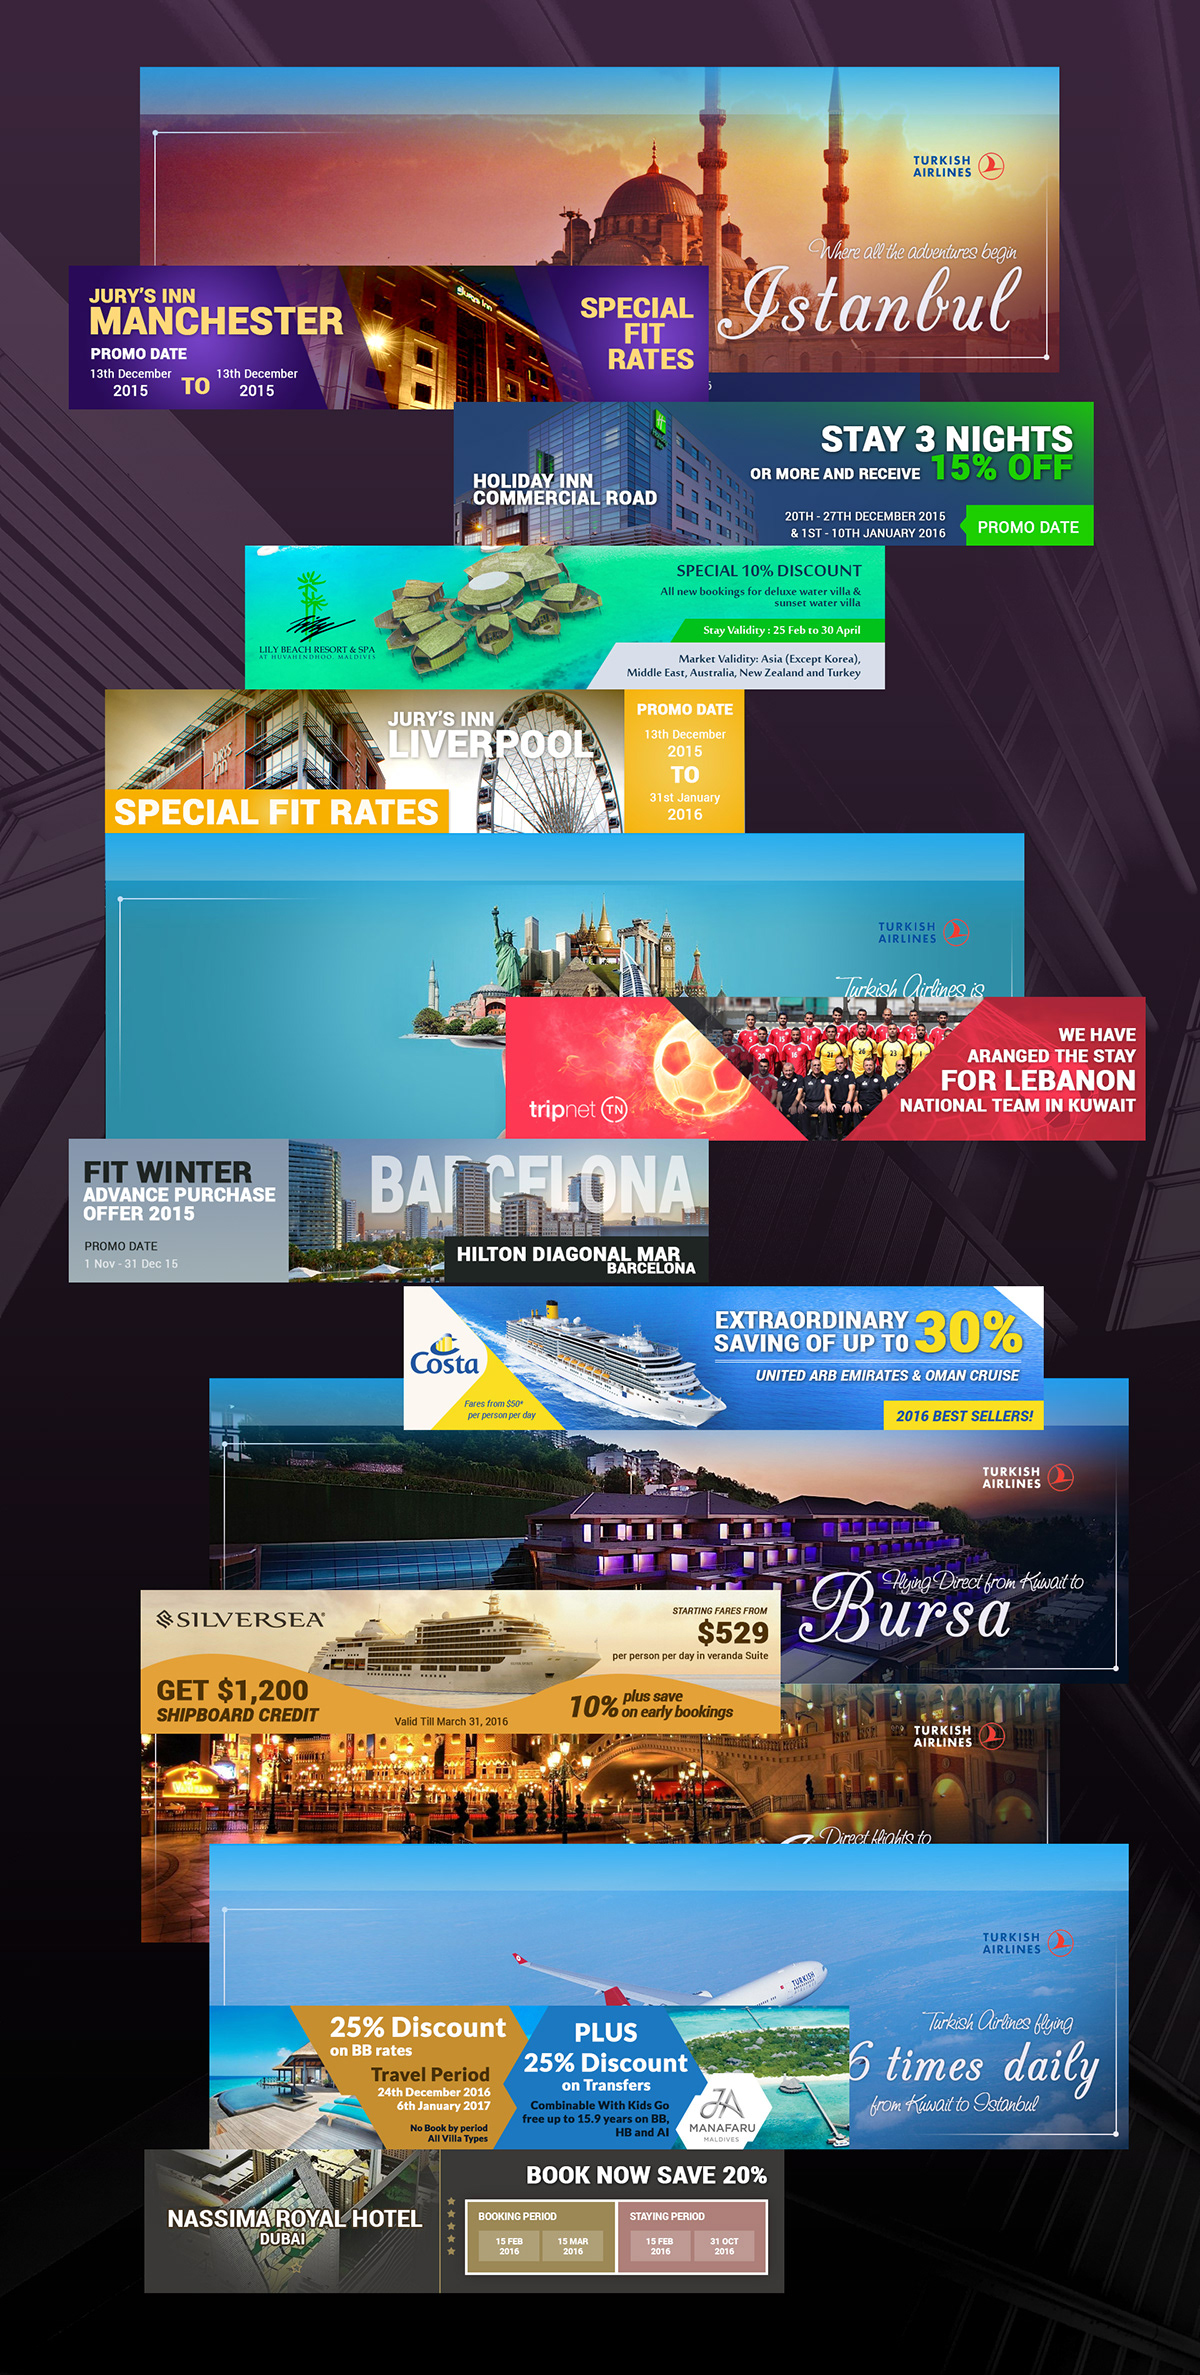 Ads Banner Designs On Pantone Canvas Gallery